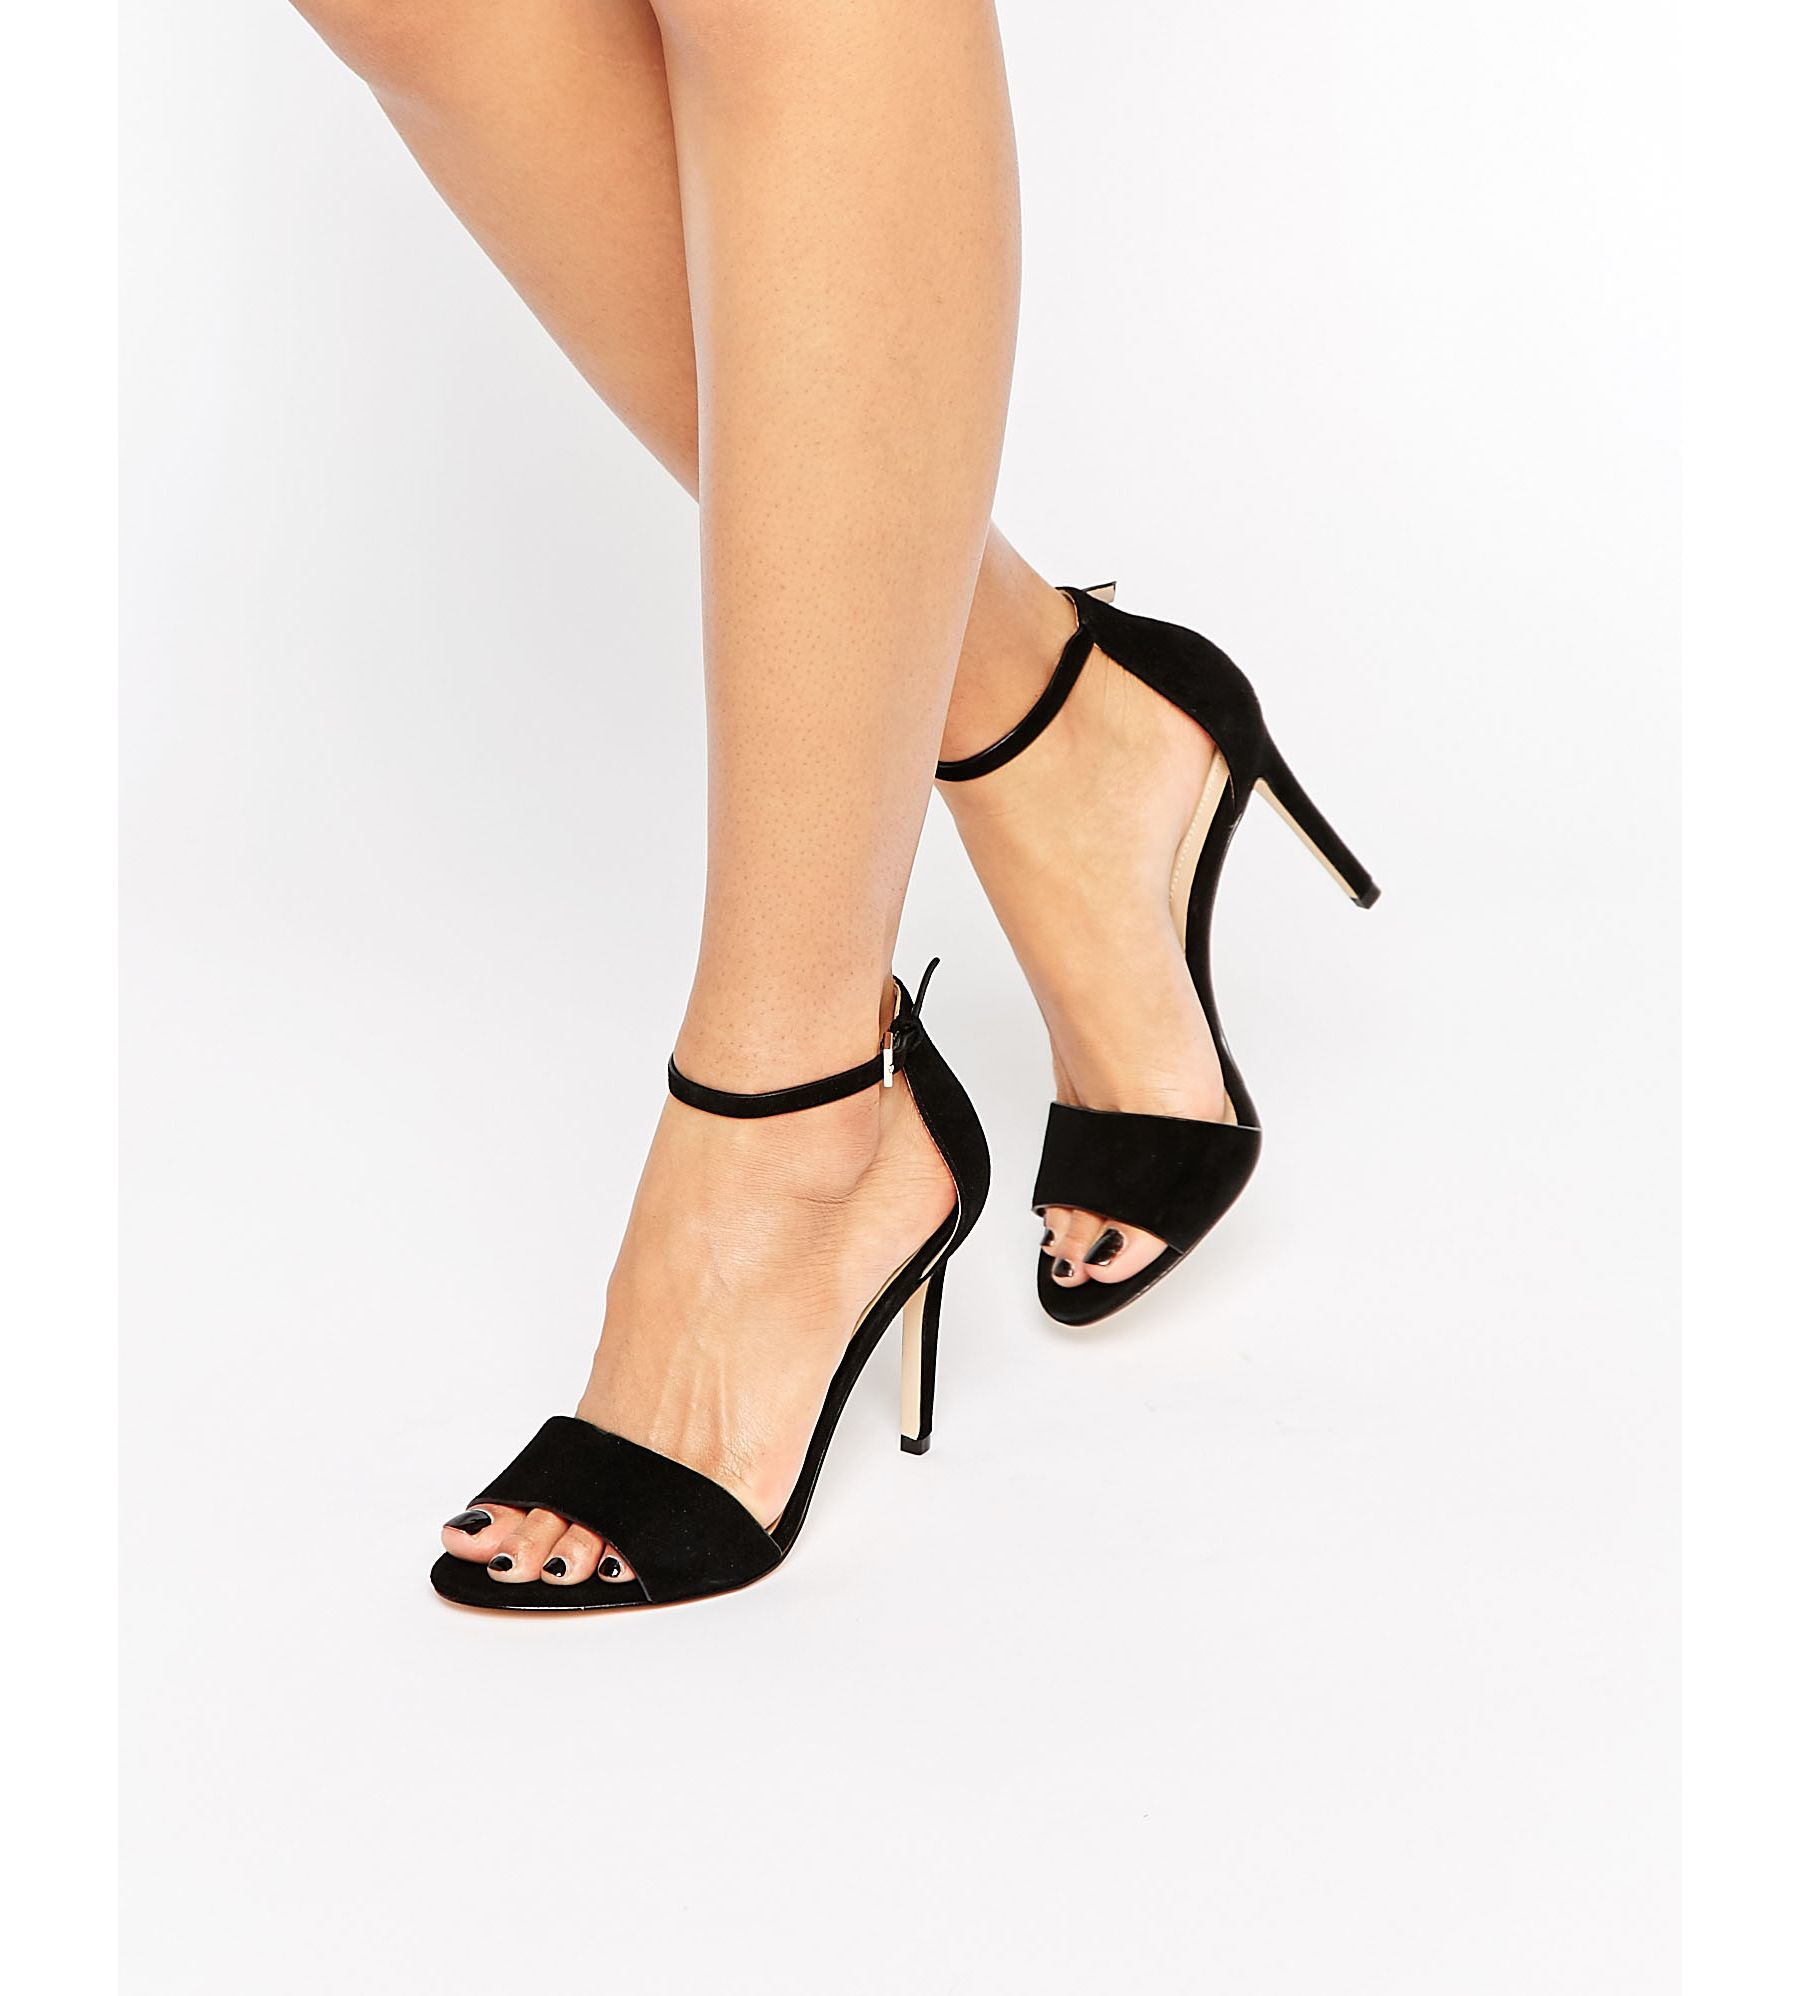 382573d34ac1 Lyst - ALDO Ldo Fiolla Ankle Strap Suede Heeled Sandals in Black